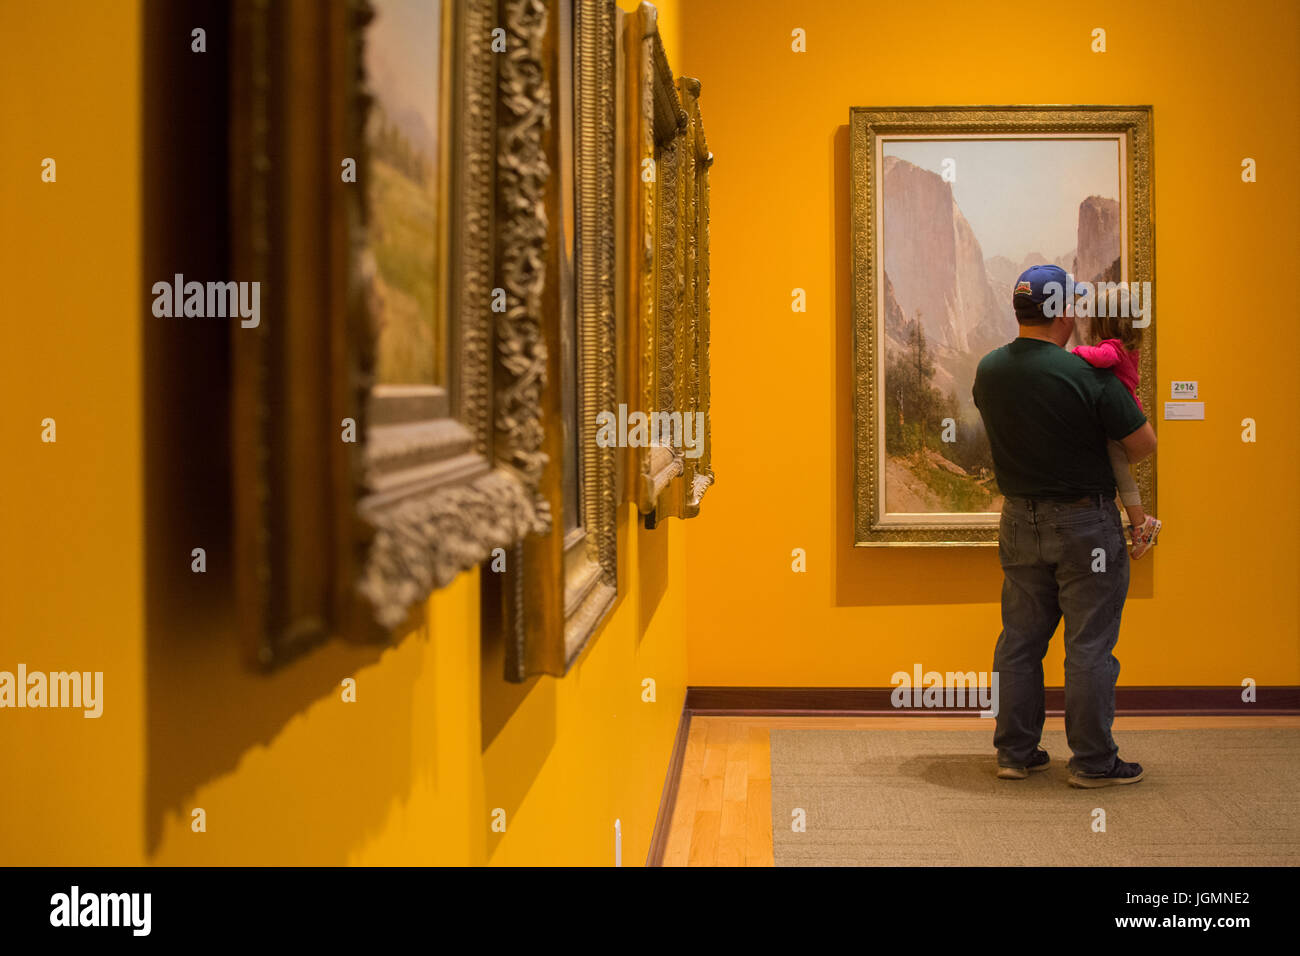 A man holds his toddler daughter and admires Western art at the Rockwell Museum of Western Art in Corning, N.Y. - Stock Image